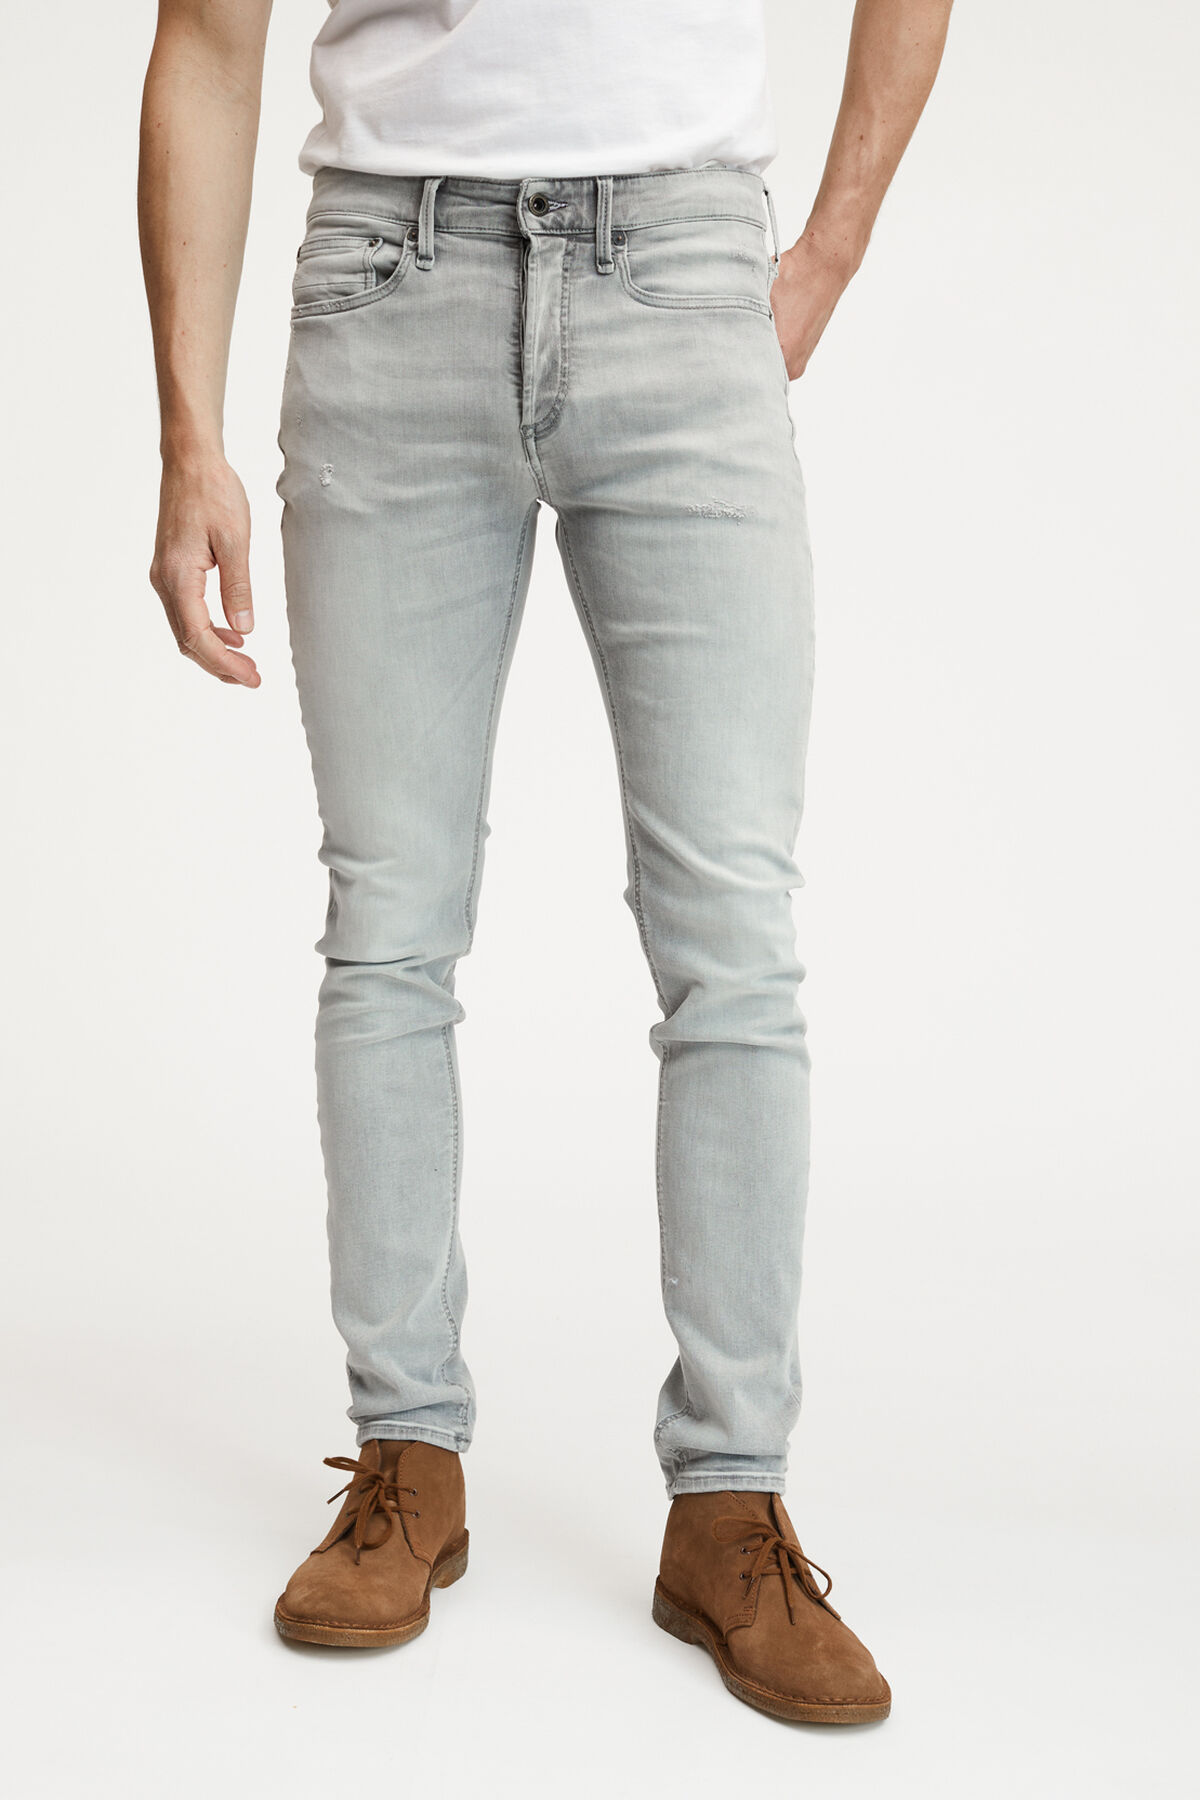 BOLT Summer Grey Denim - Skinny Fit